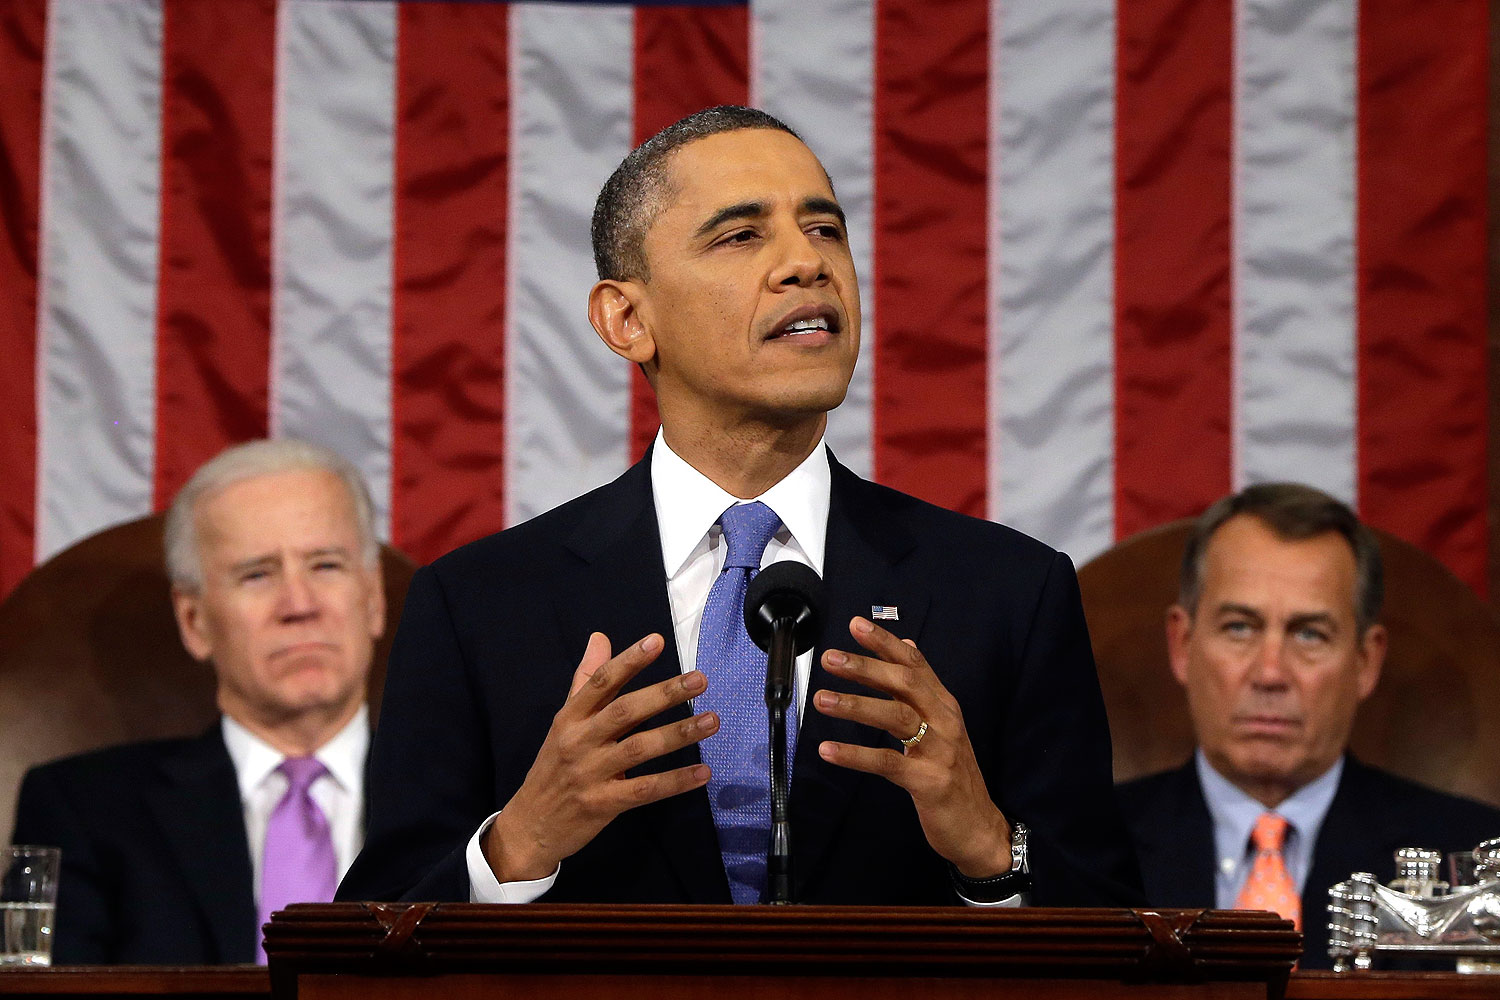 President Barack Obama, gives the State of the Union address in Washington on Tuesday, Feb. 12, 2013.